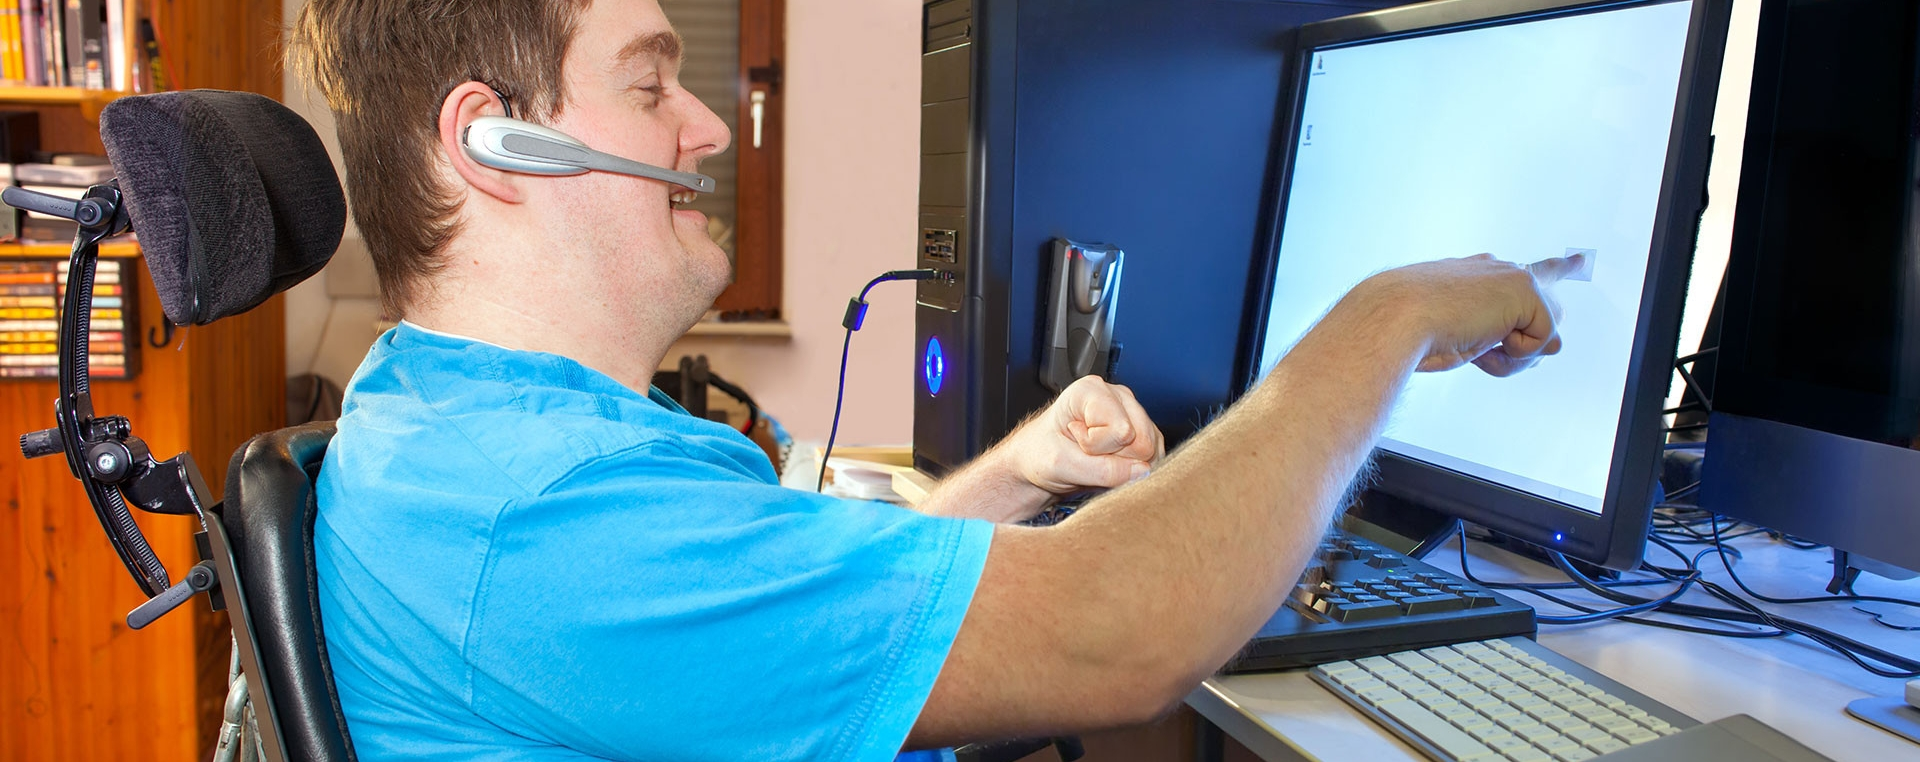 Home care for people with complex health needs - NCCN